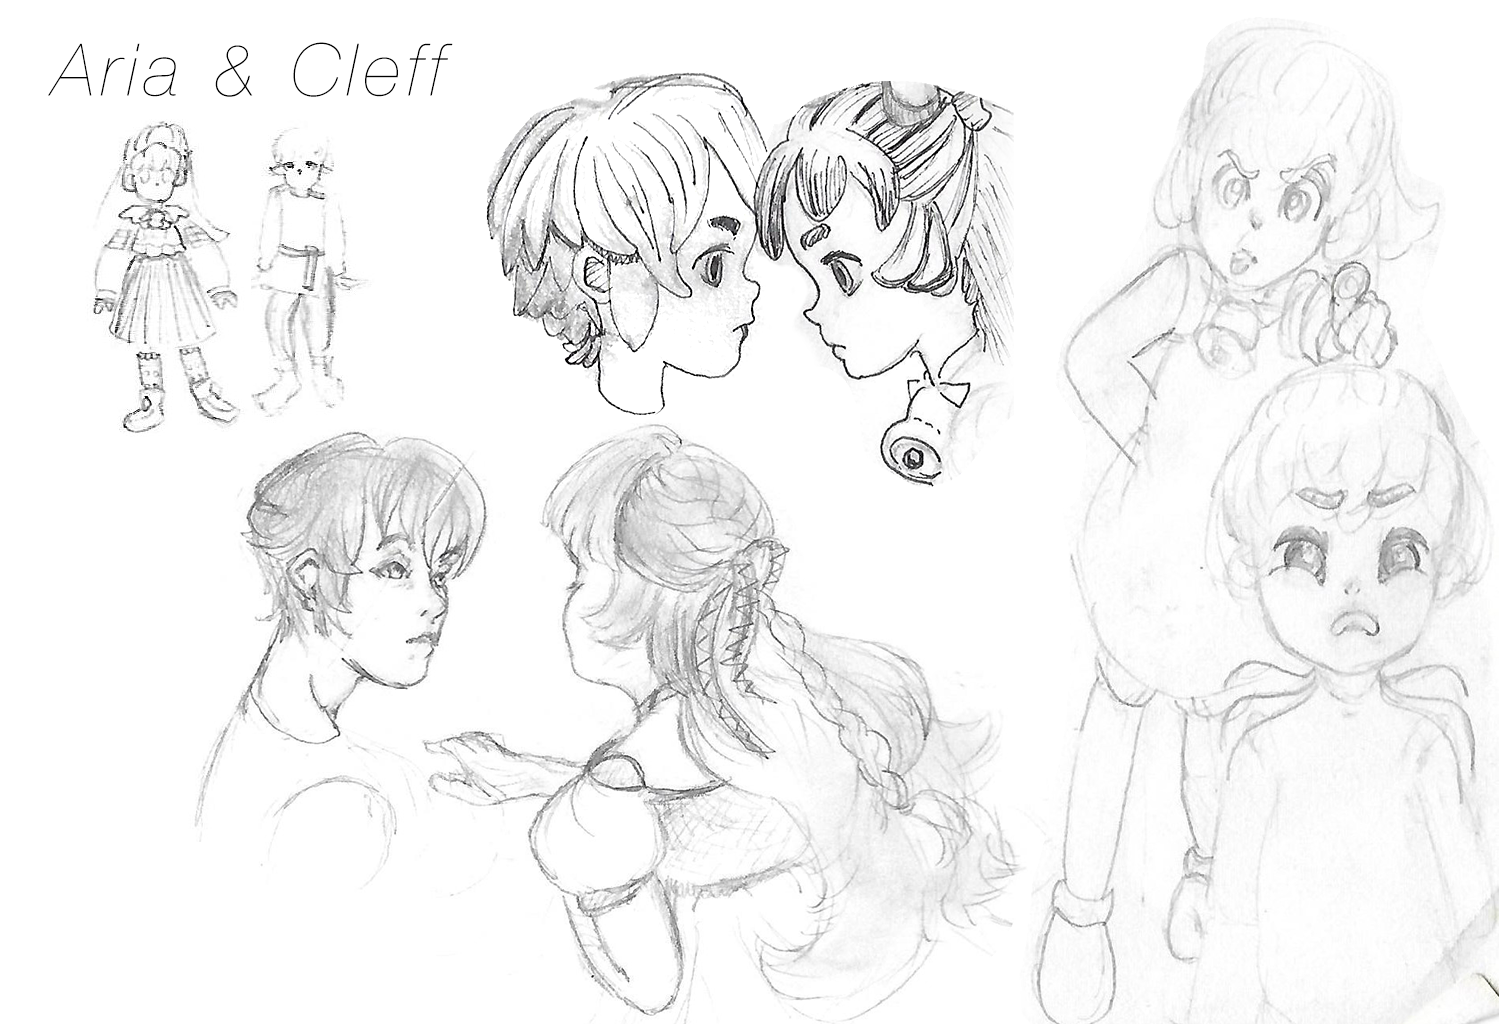 aria_cleff_concepts.png